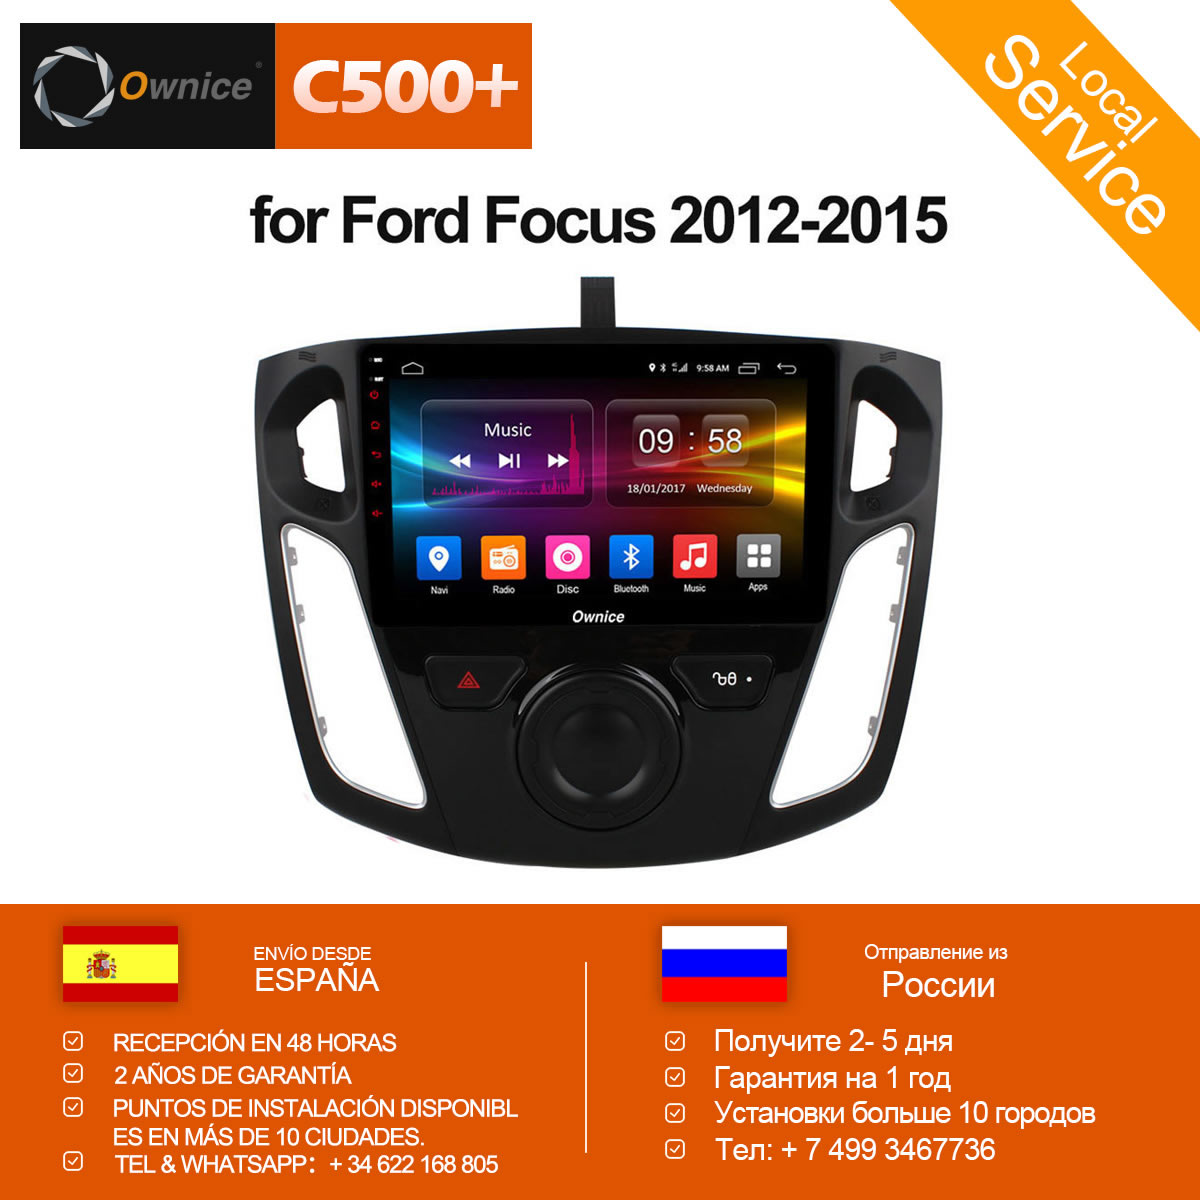 Ownice C500+ G10 Octa 8 Core Android 8.1 Car Radio Player GPS Navi for Ford Focus 3 2012 2013 2014 2015 Support DVD 4G SIM Card цены онлайн